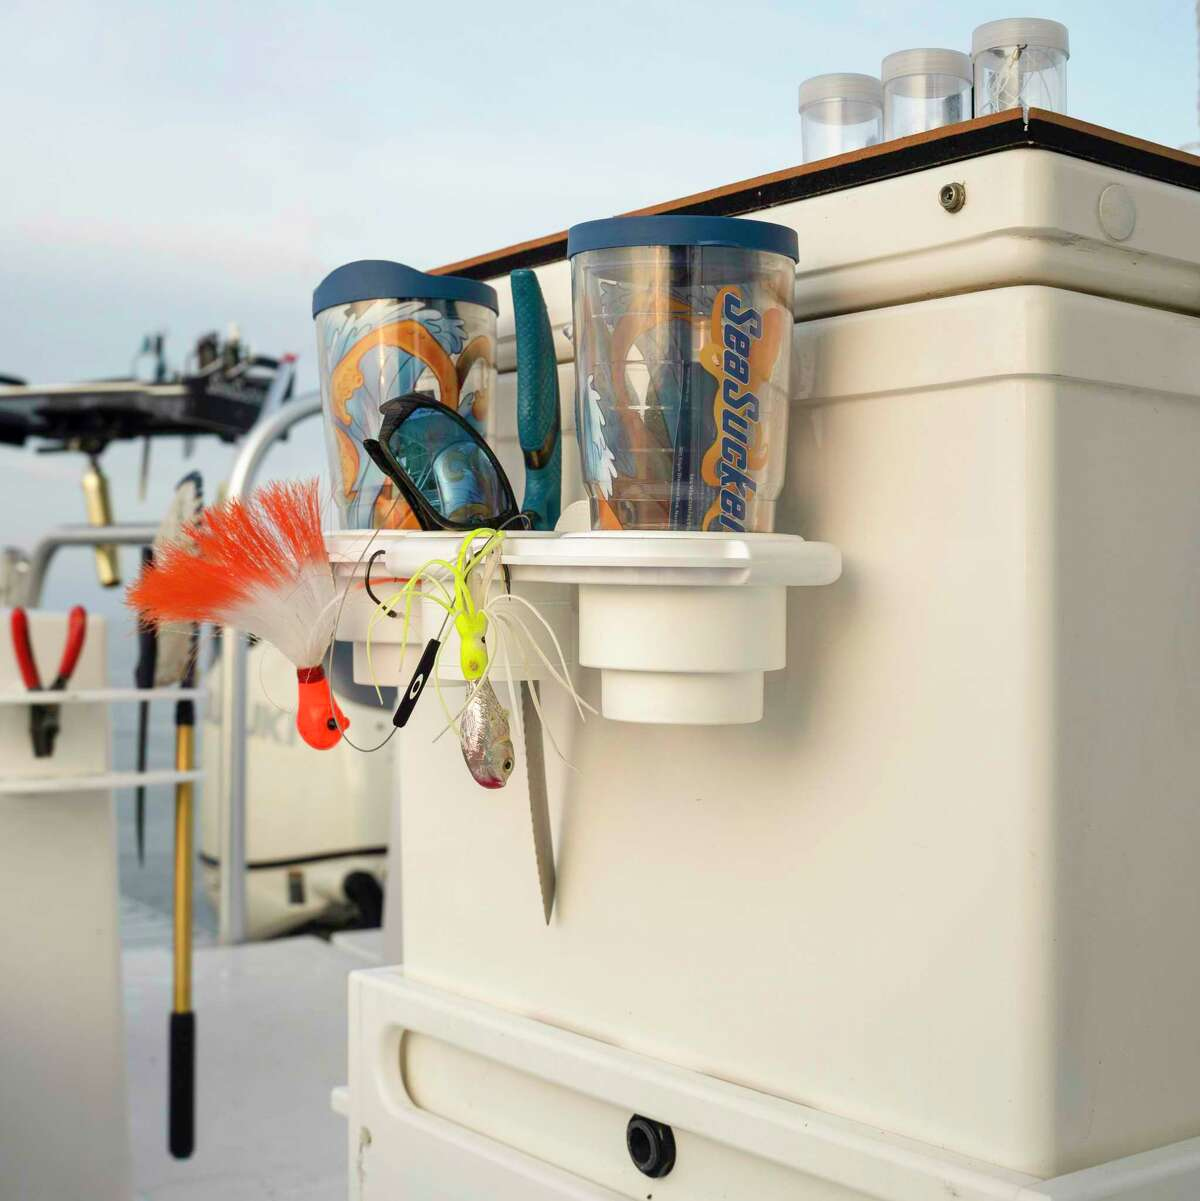 The new SeaSucker cup, tool and lure accessory holder is handy and can be put just about anywhere on a boat.